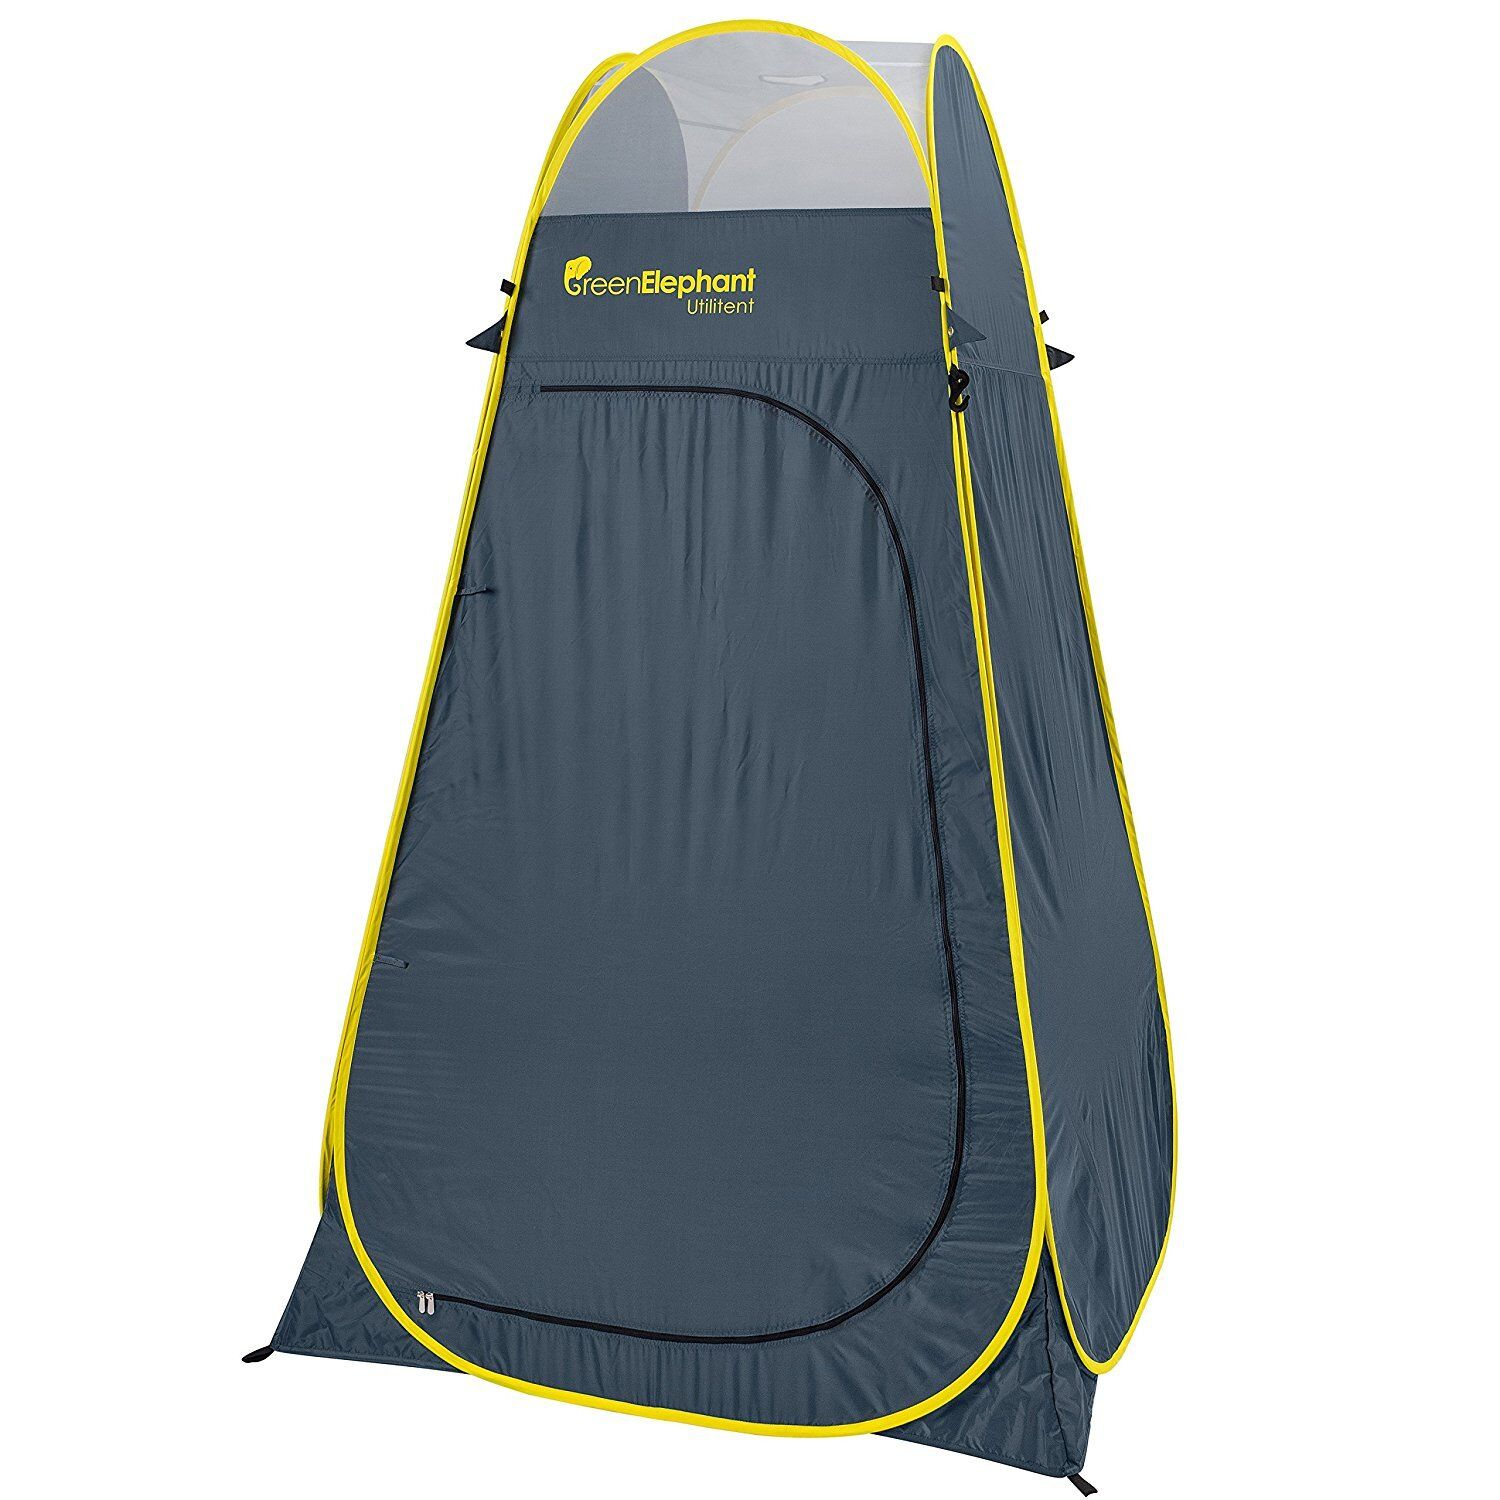 Camp Shower Curtain Portable Camping Toilet and Changing Room  Tent Shelter NEW  free and fast delivery available